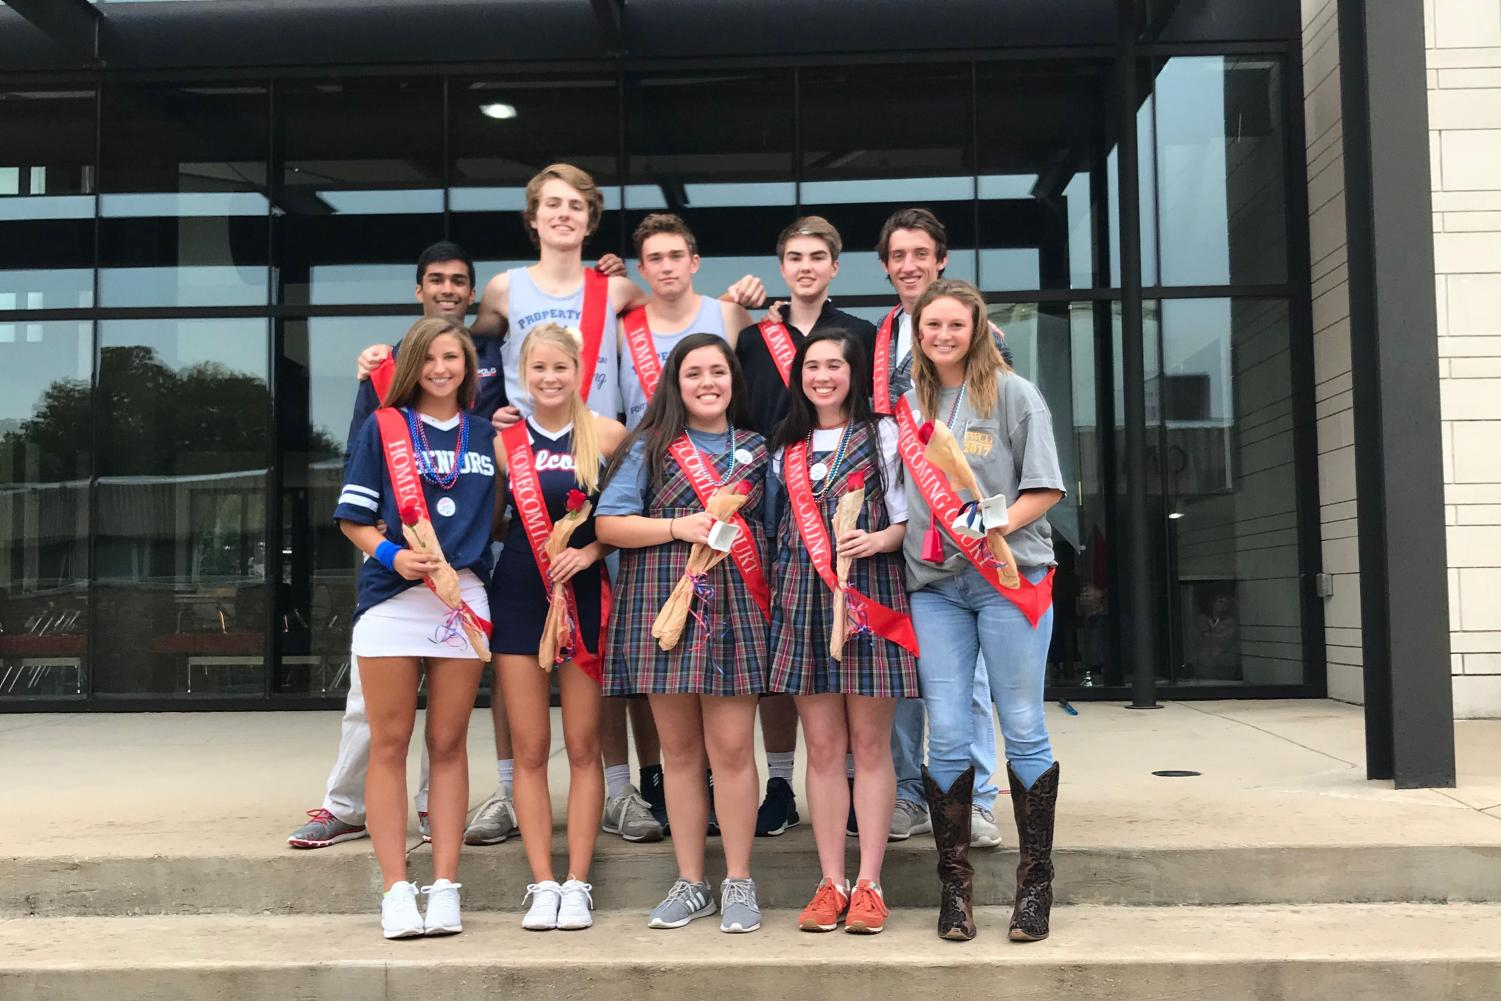 The 2017 homecoming court poses on the steps of the martin center after the pep rally